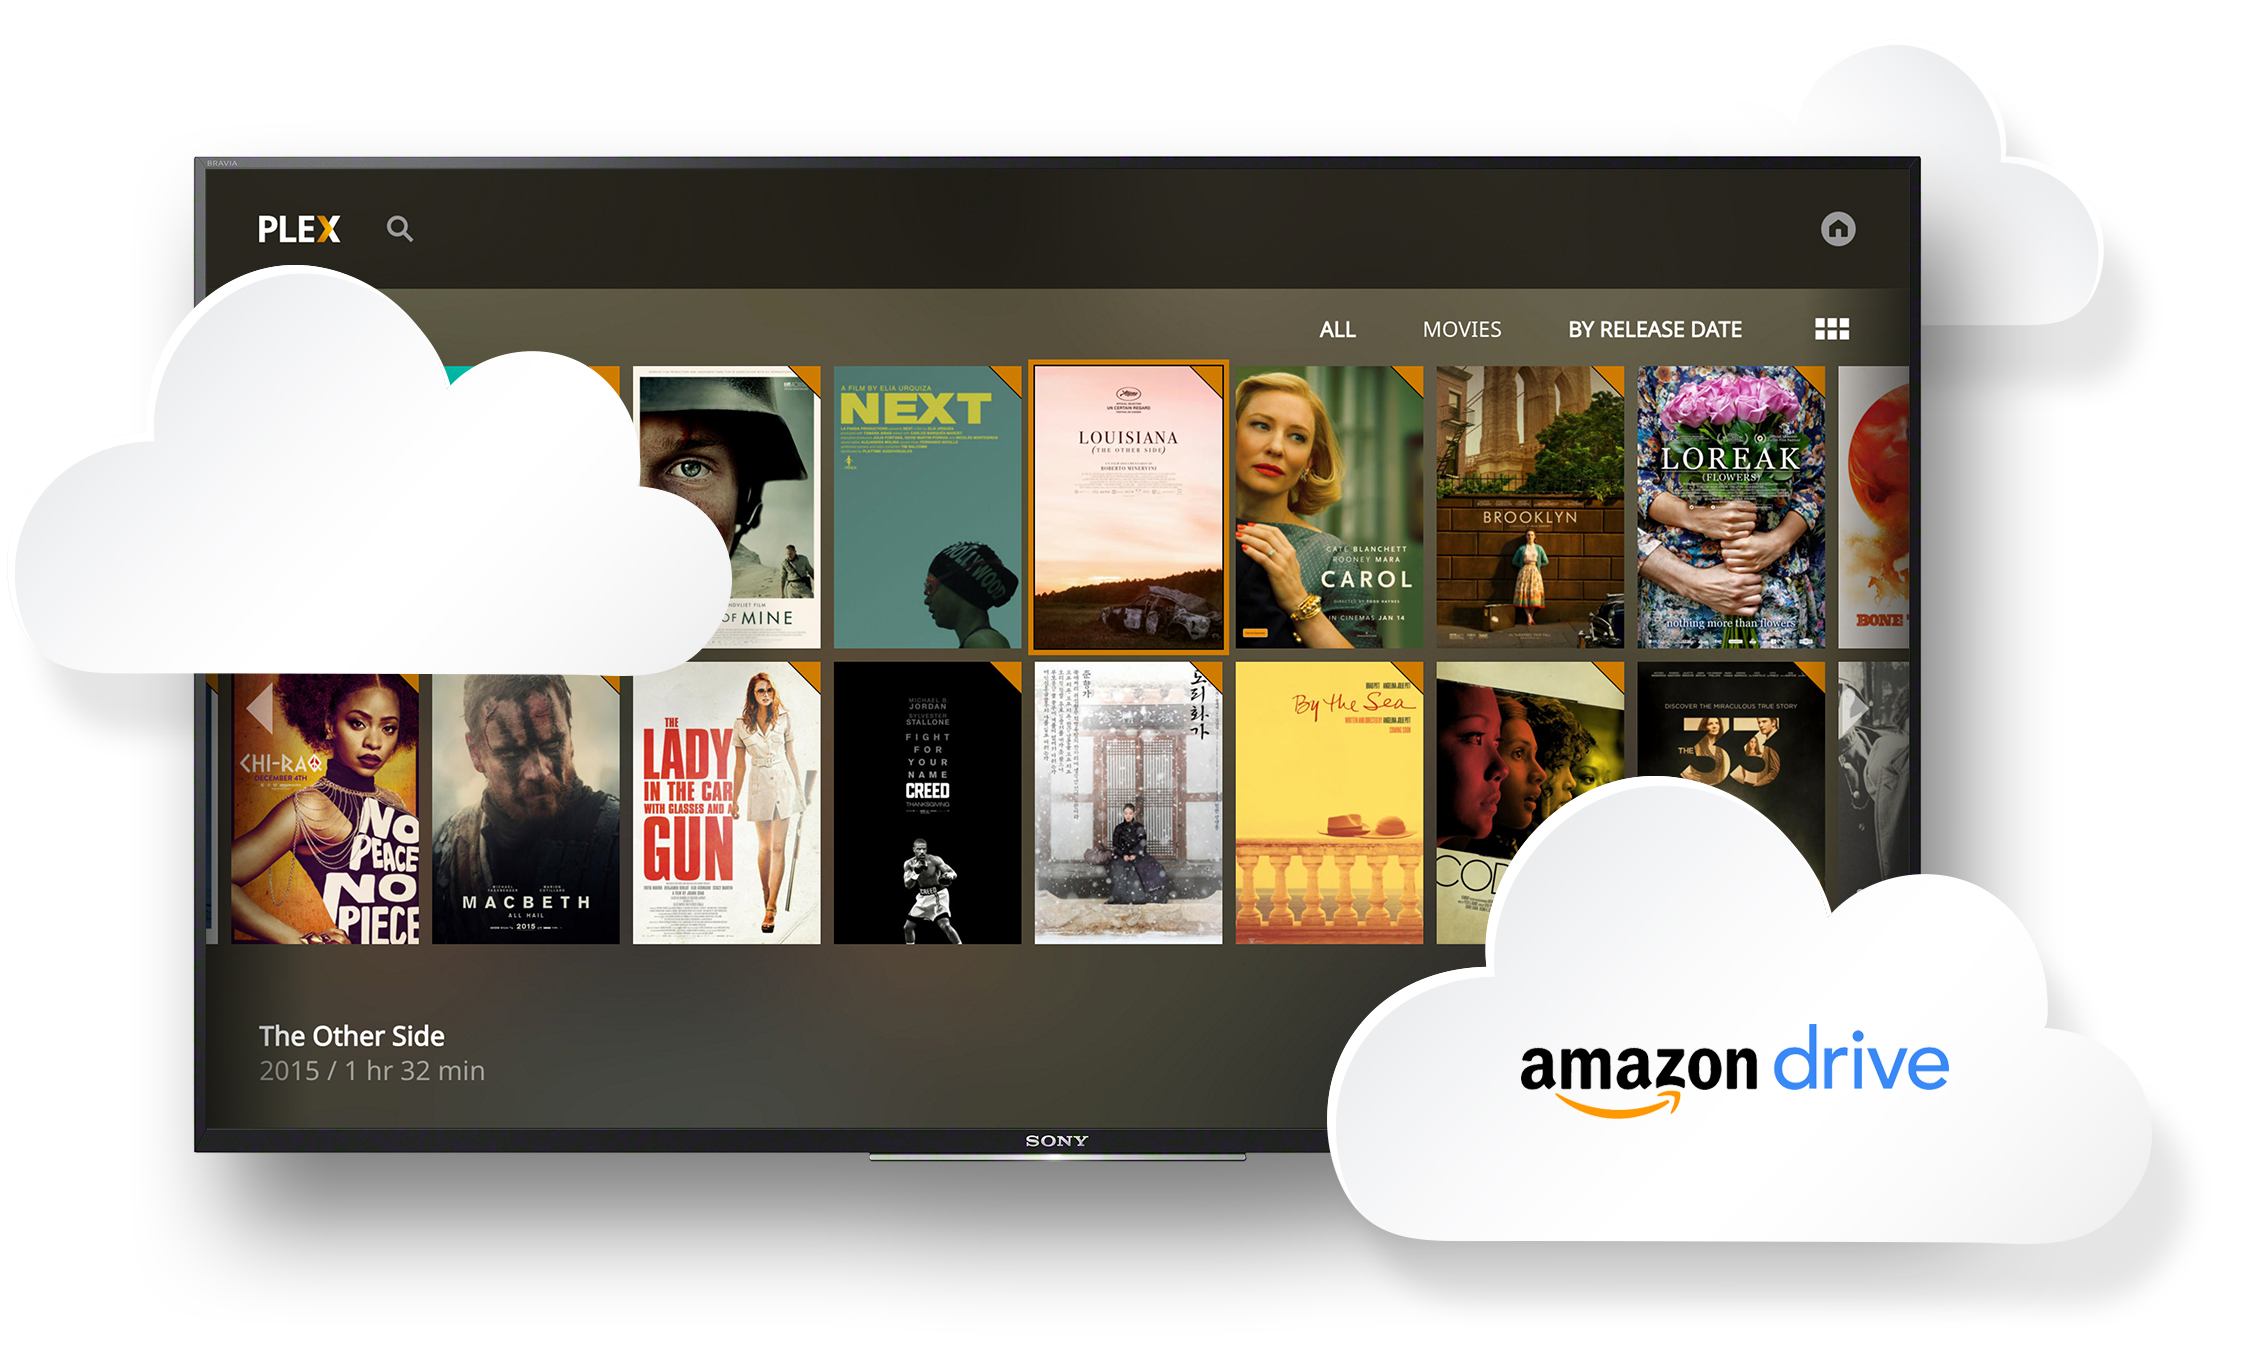 Plex shutters its cloud service after months of technical